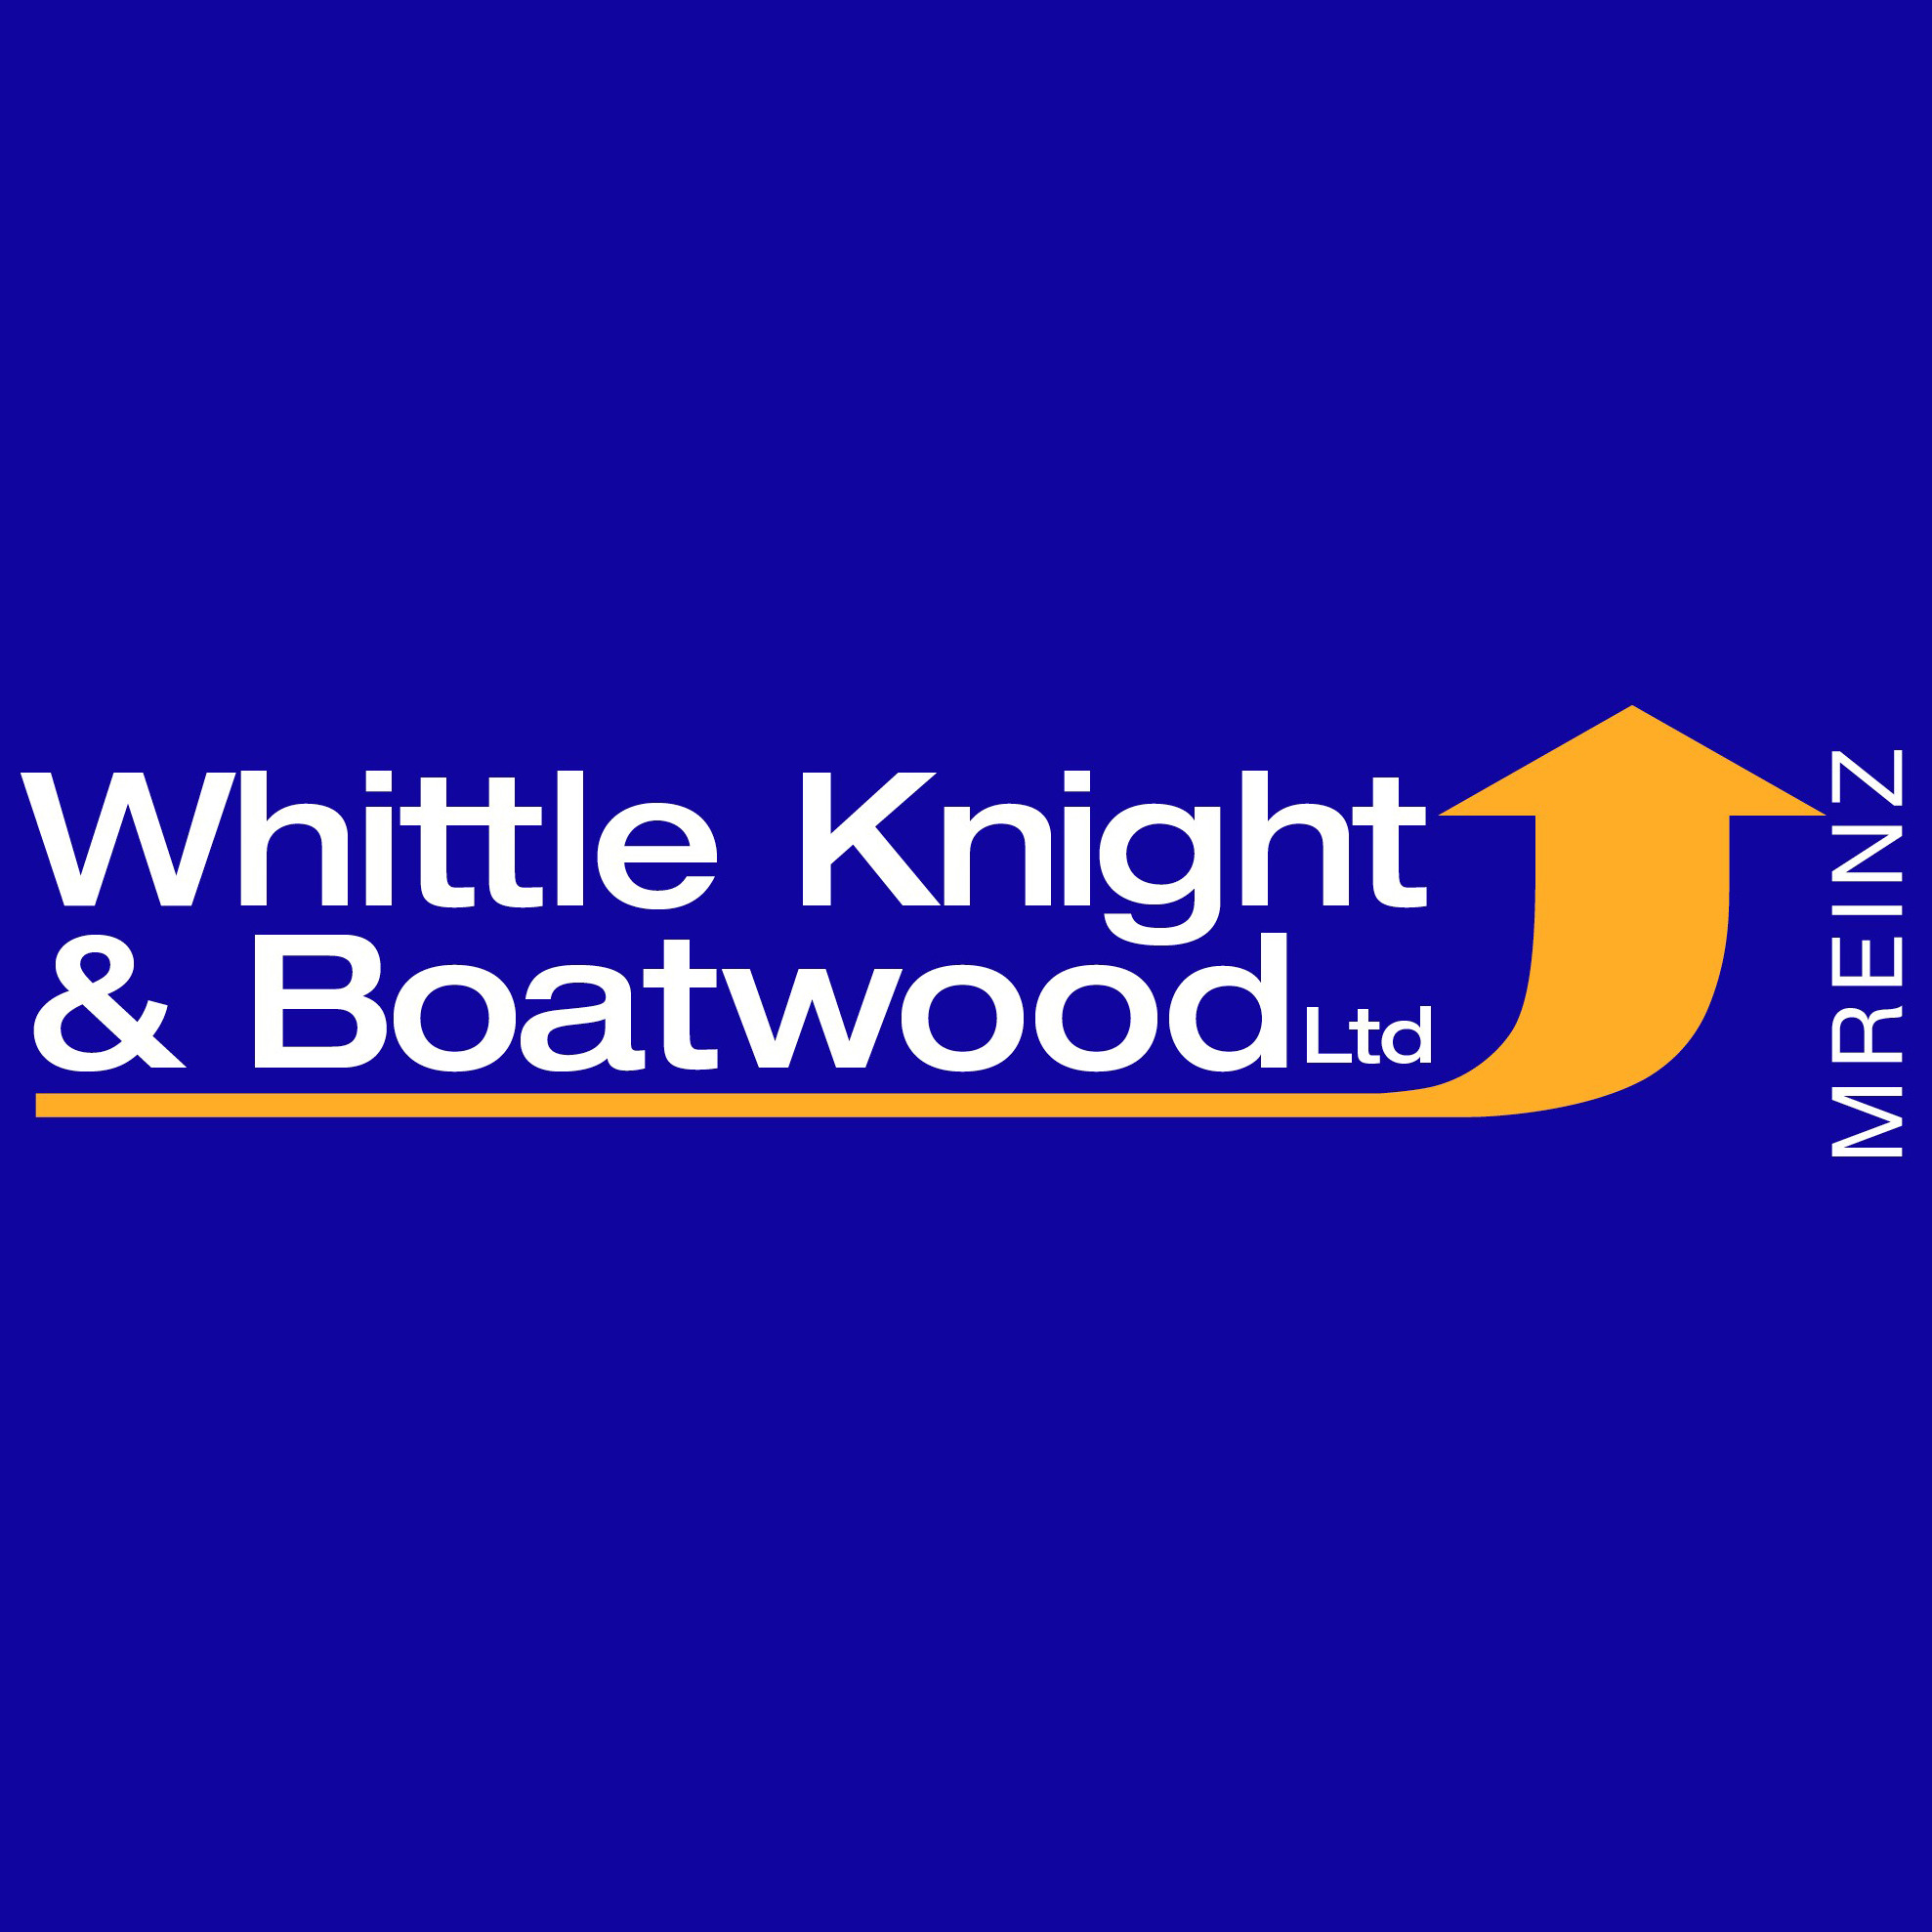 Whittle Knight & Boatwood Ltd